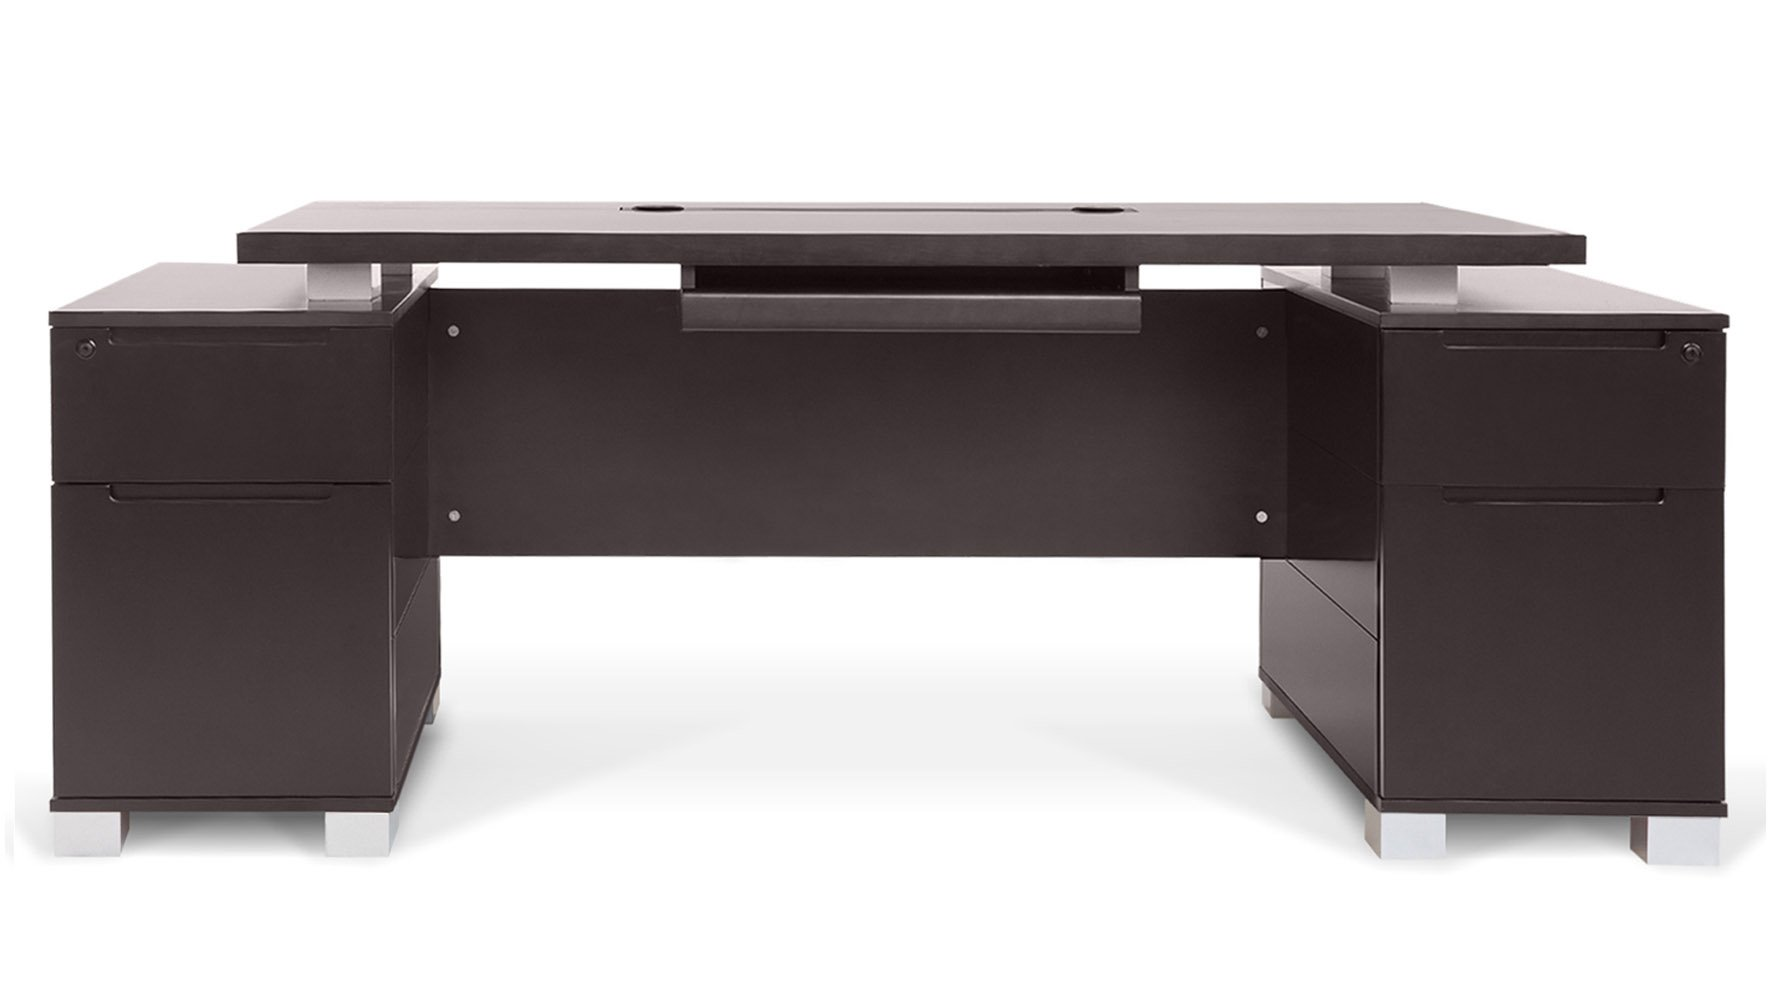 ford executive modern desk with filing cabinets  dark wood finish  - ford executive modern desk with filing cabinets  dark wood finish  zurifurniture